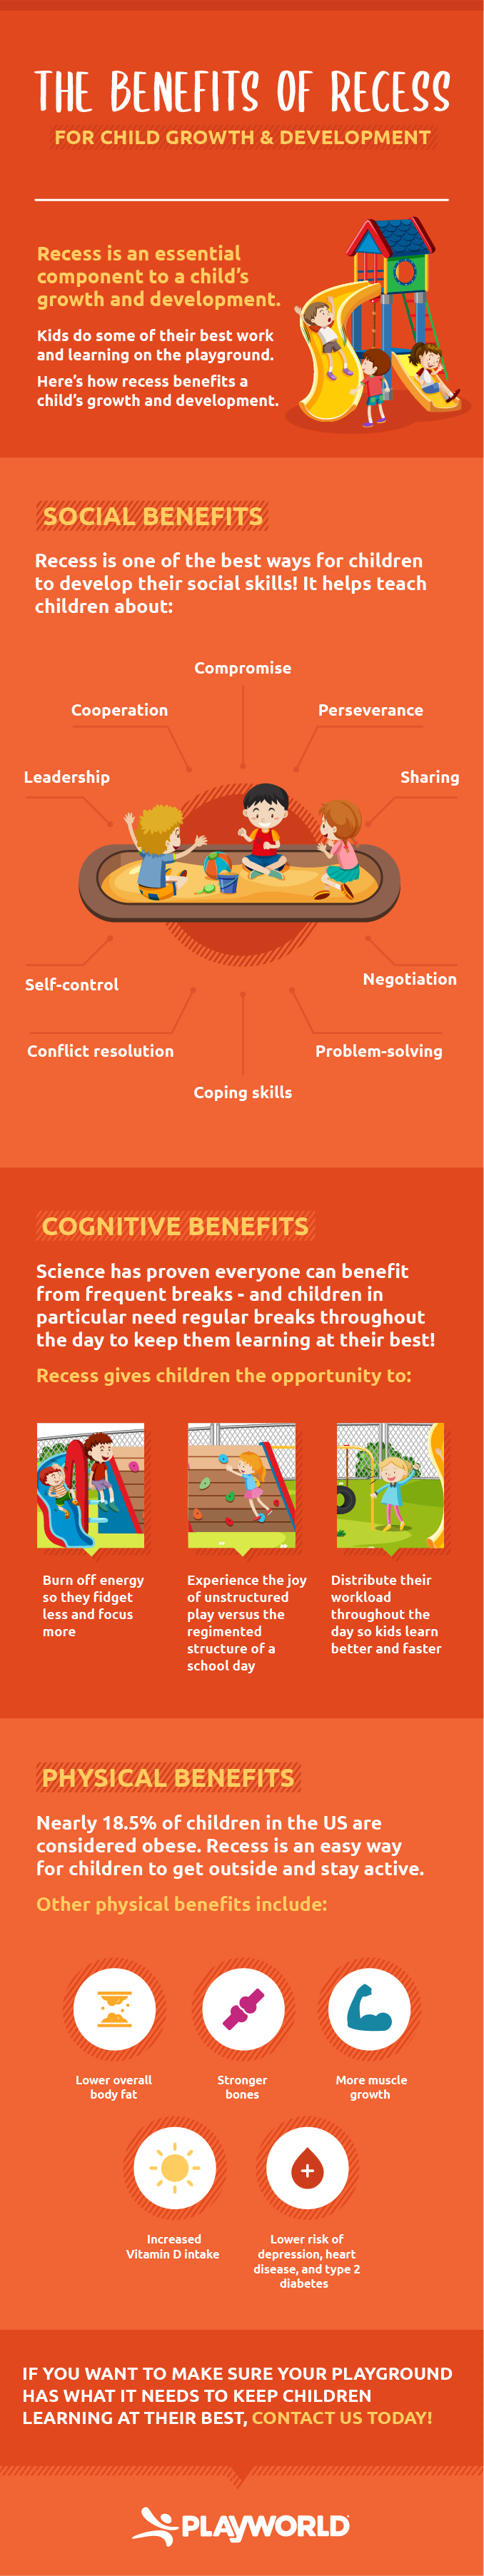 The Benefits Of Recess